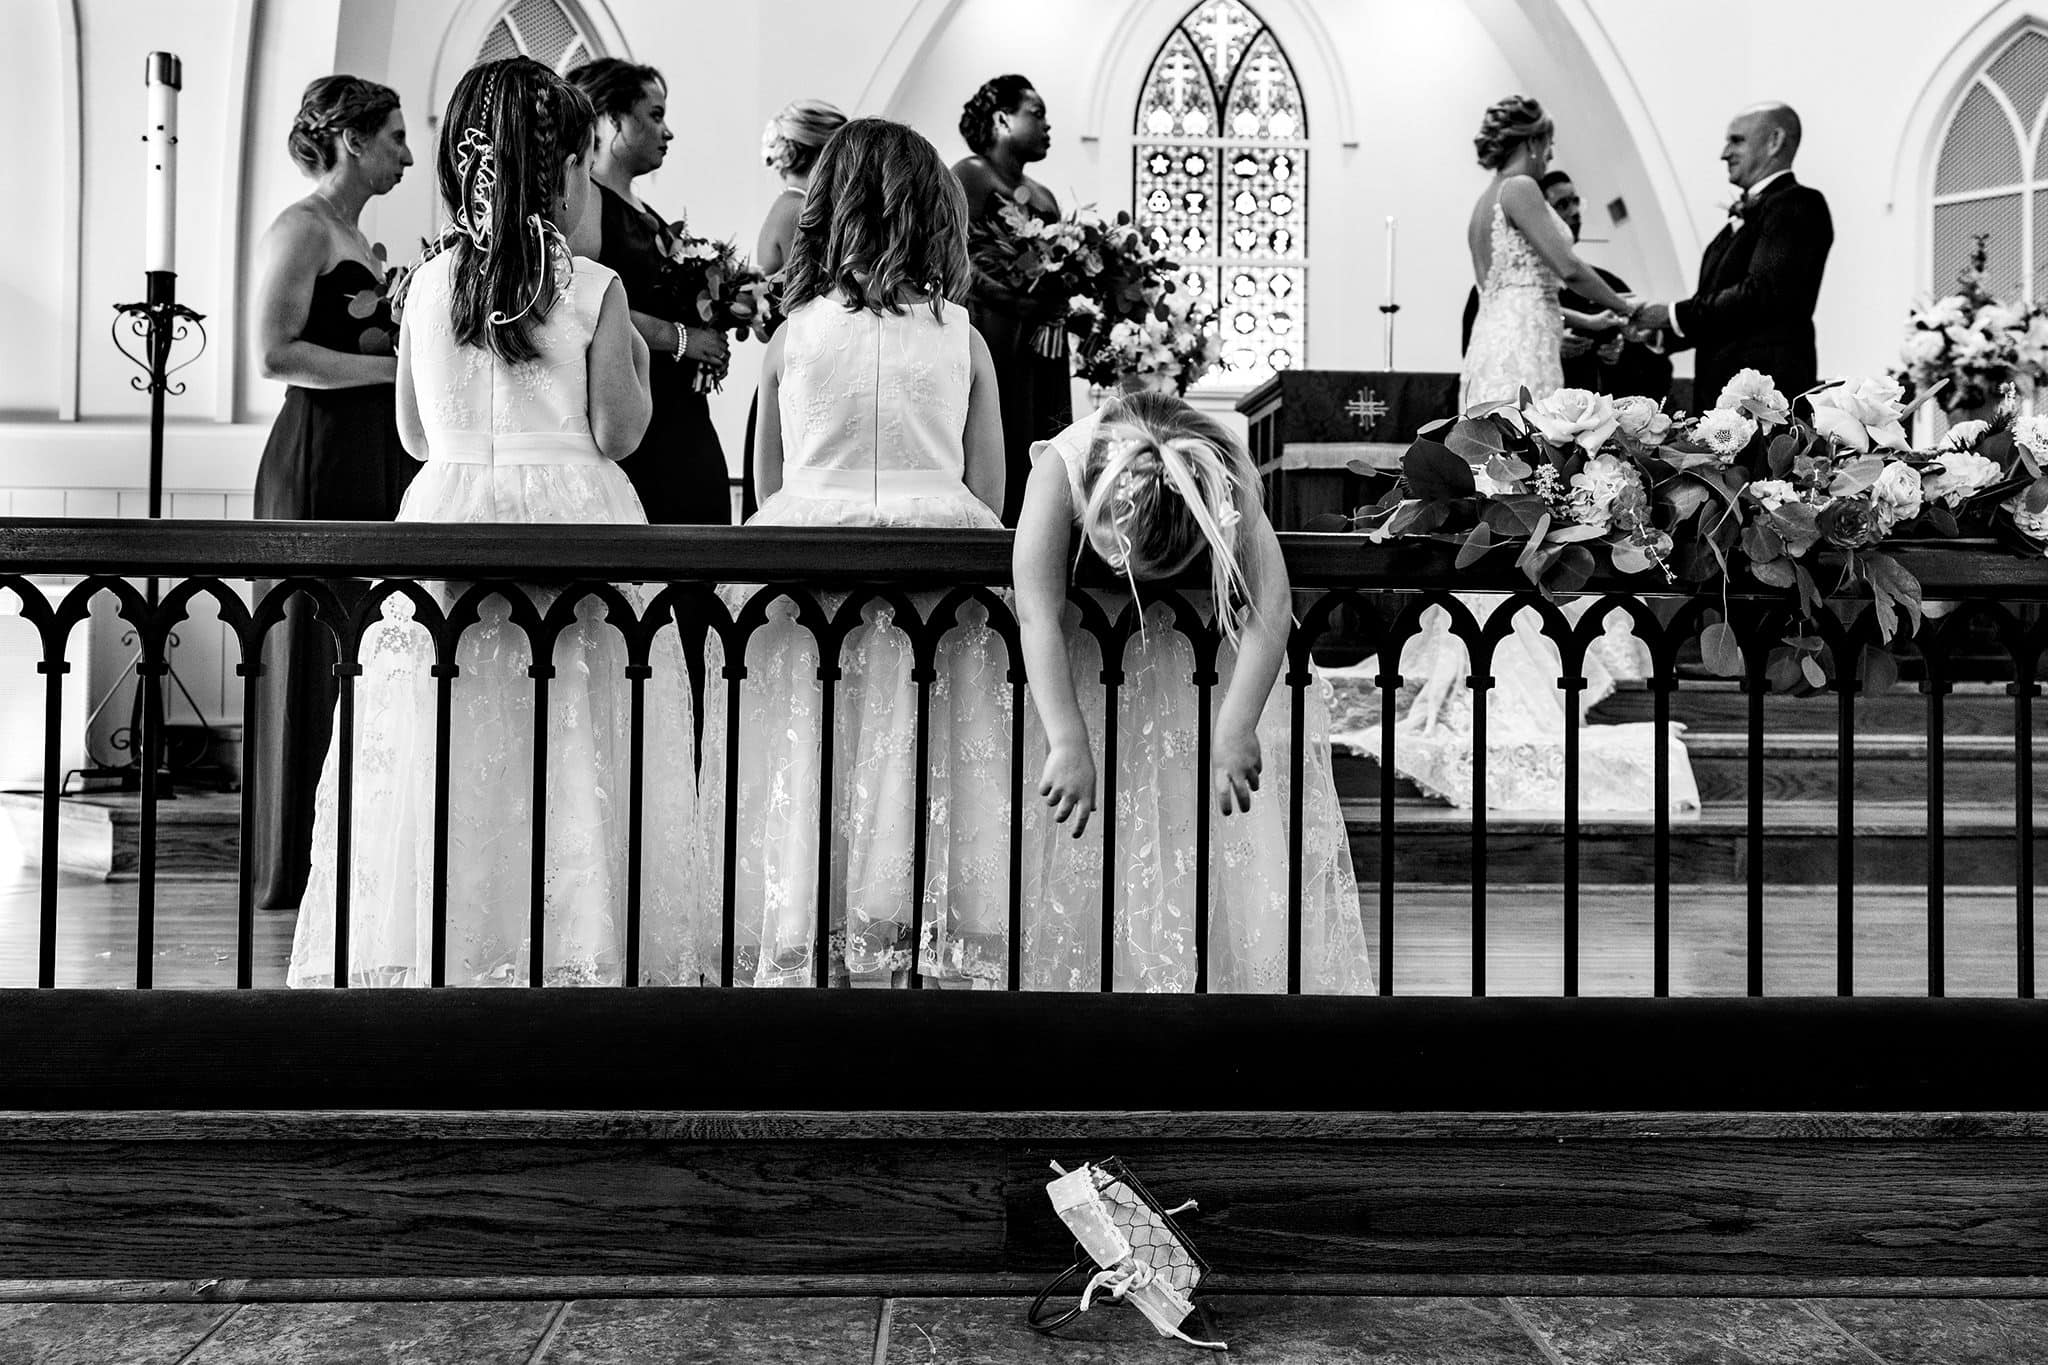 Flower Girl leaning over railing for flower basket